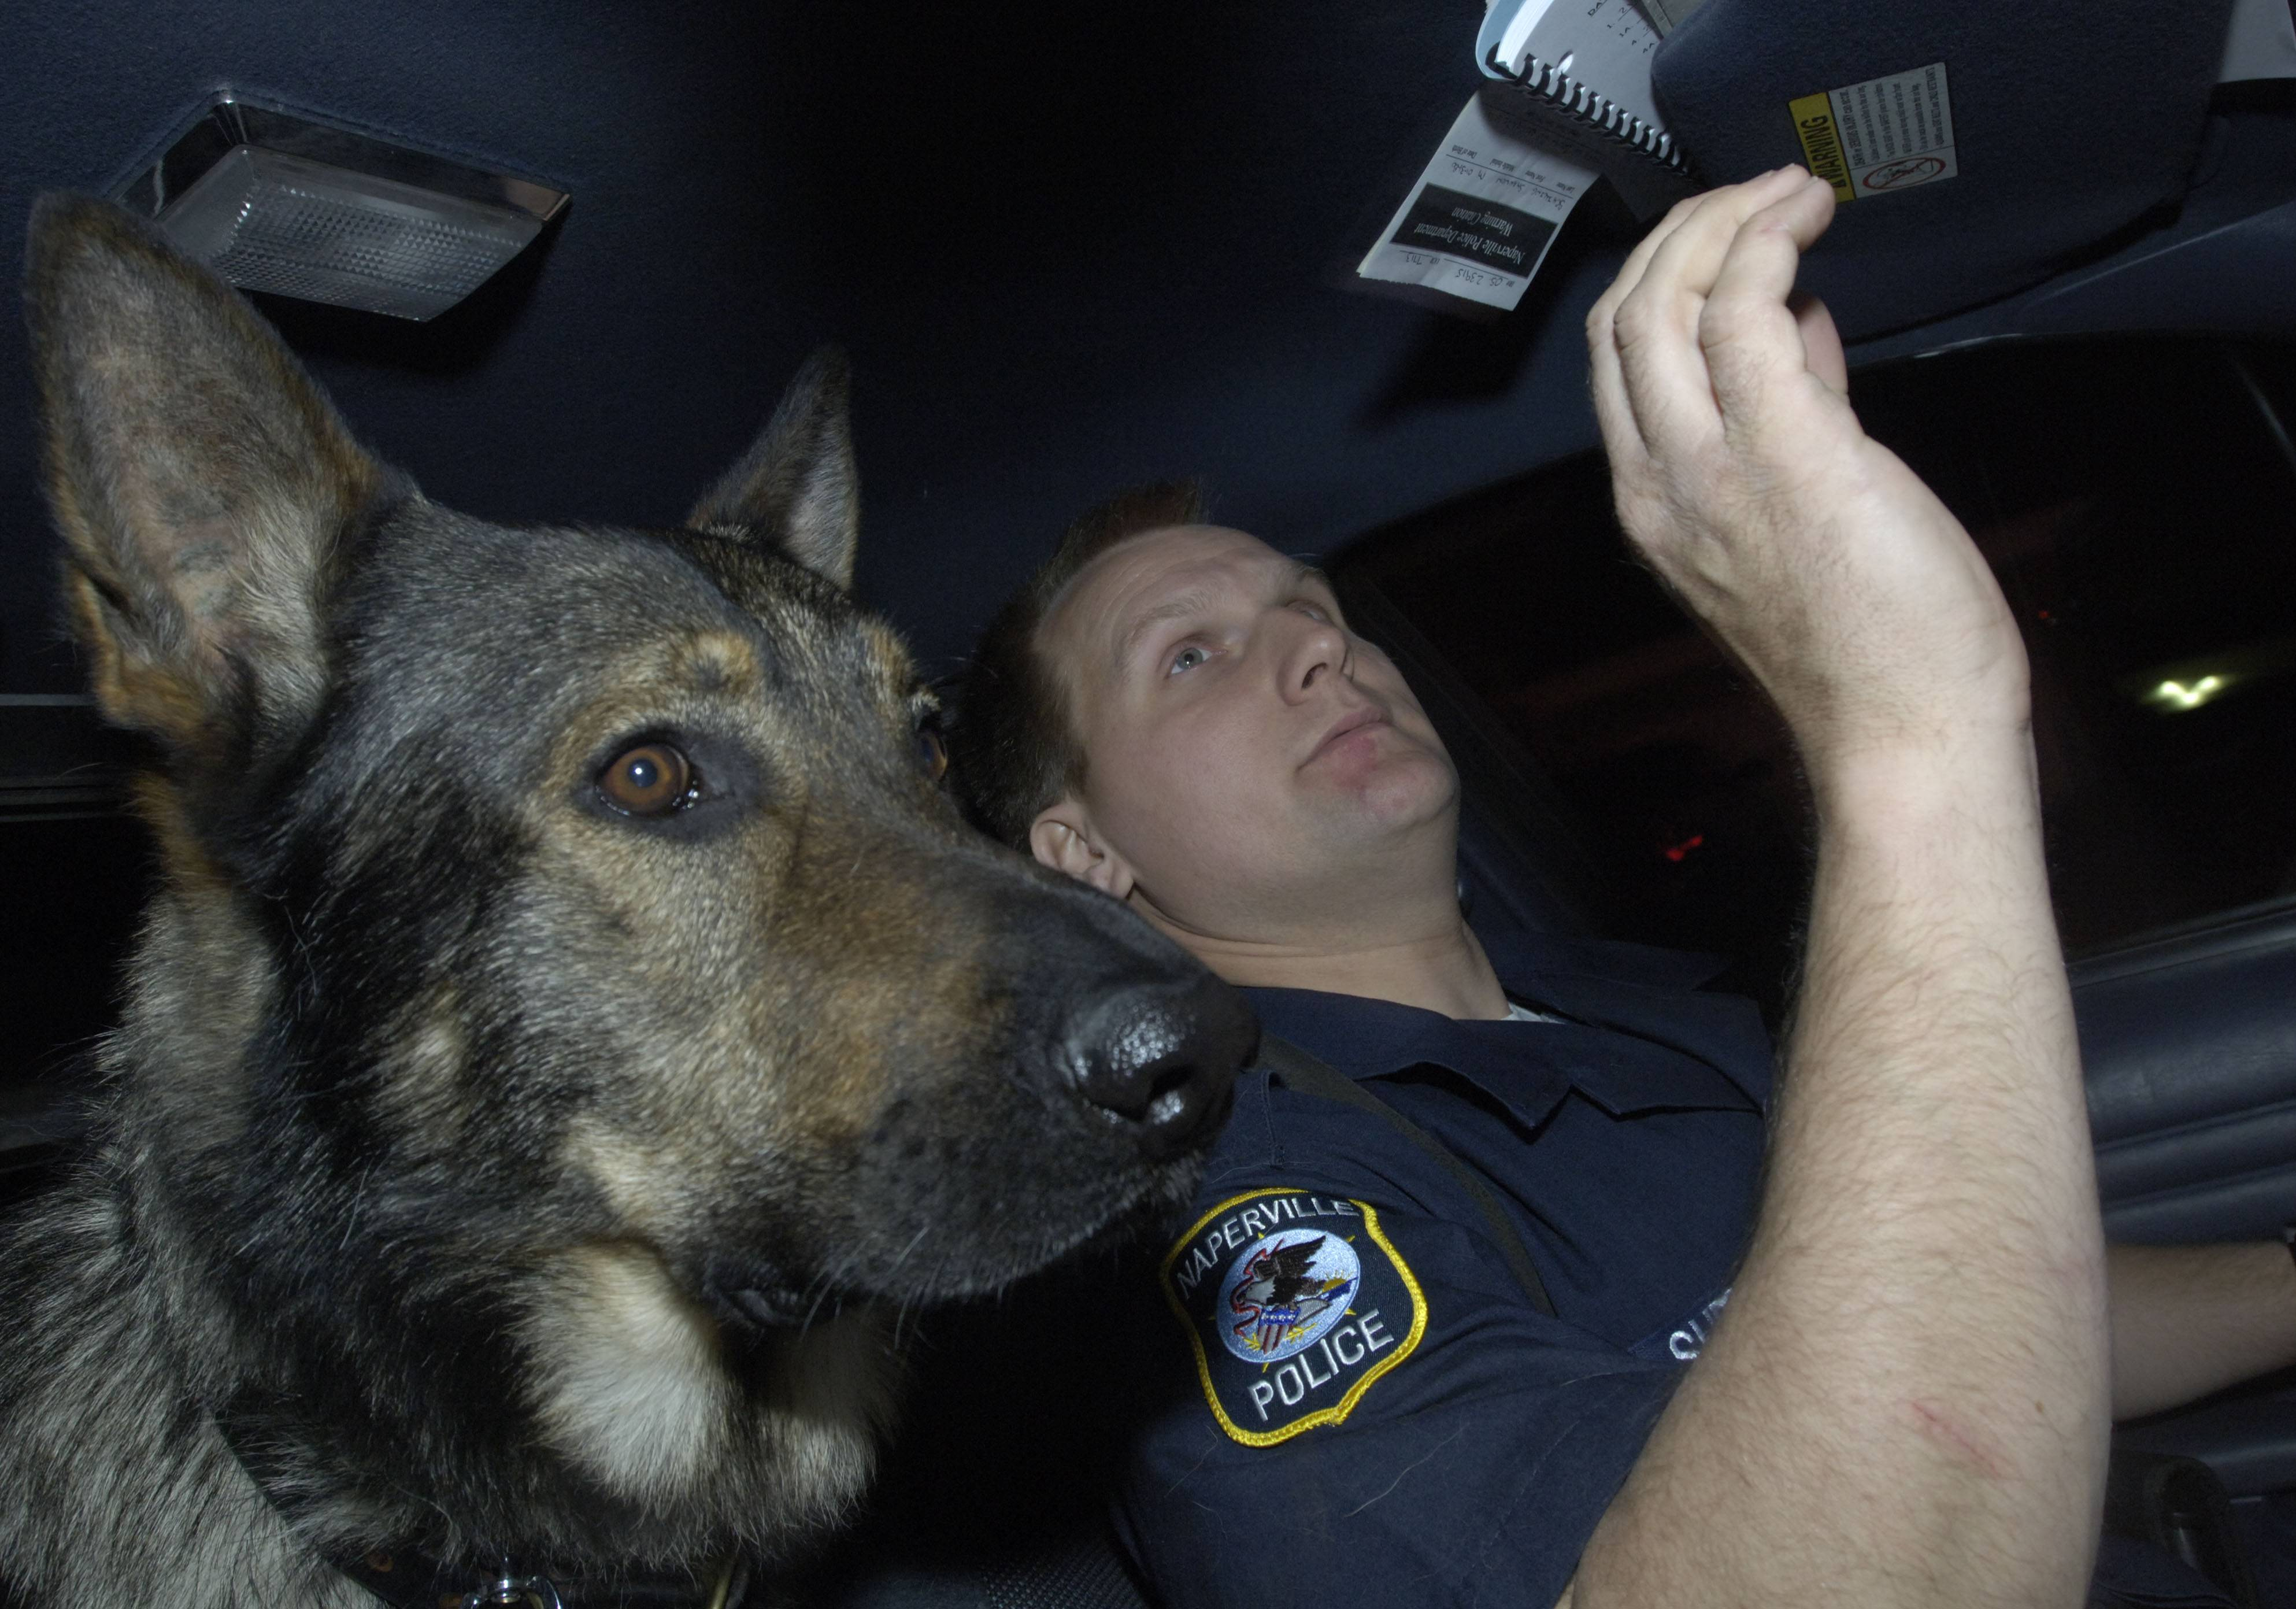 Naperville police officer Chris Sherwin works a patrol shift in 2005 with his K-9 Sabek, a German shepherd who was his partner for nine years.